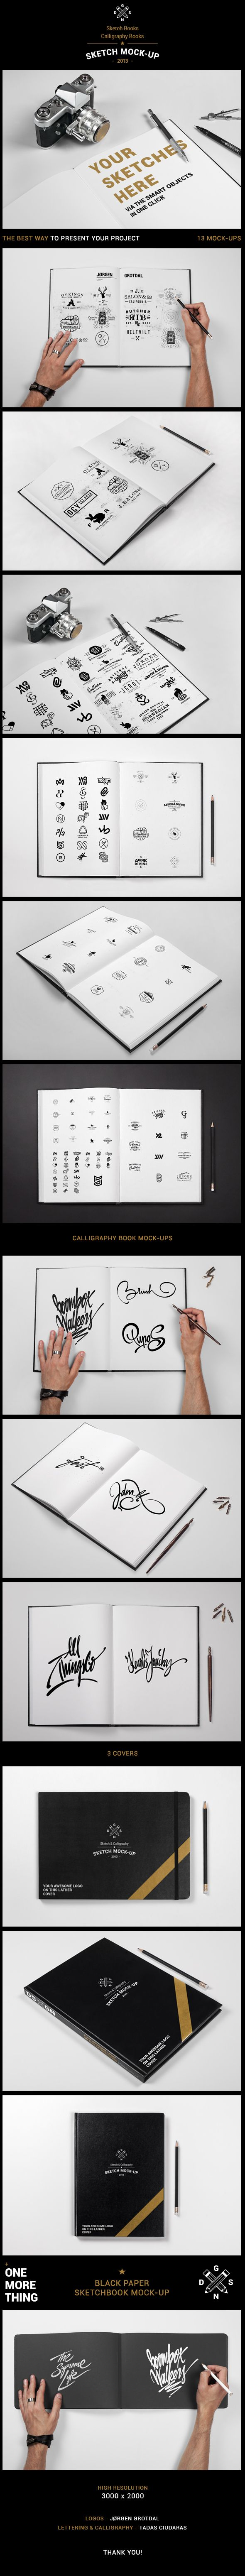 #Sketch Books / #Calligraphy Books Mock-up by Synthetique , via #Behance http://graphicriver.net/item/sketch-book-calligraphy-book-mockup/5002810?ref=Synthetique